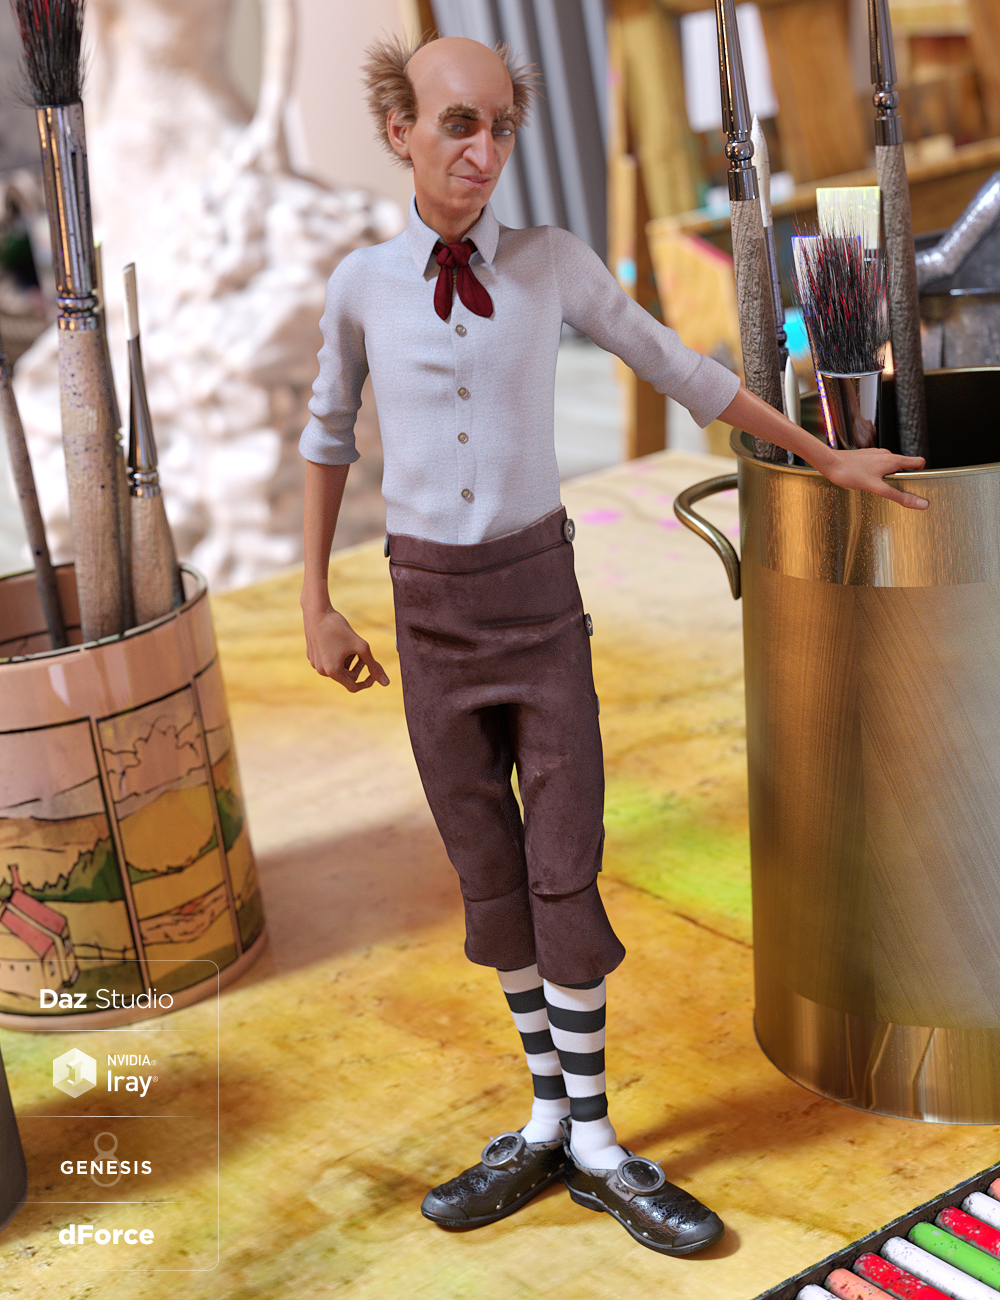 dForce House Brownie Outfit for Genesis 8 Male(s) by: MadaMoonscape GraphicsSade, 3D Models by Daz 3D